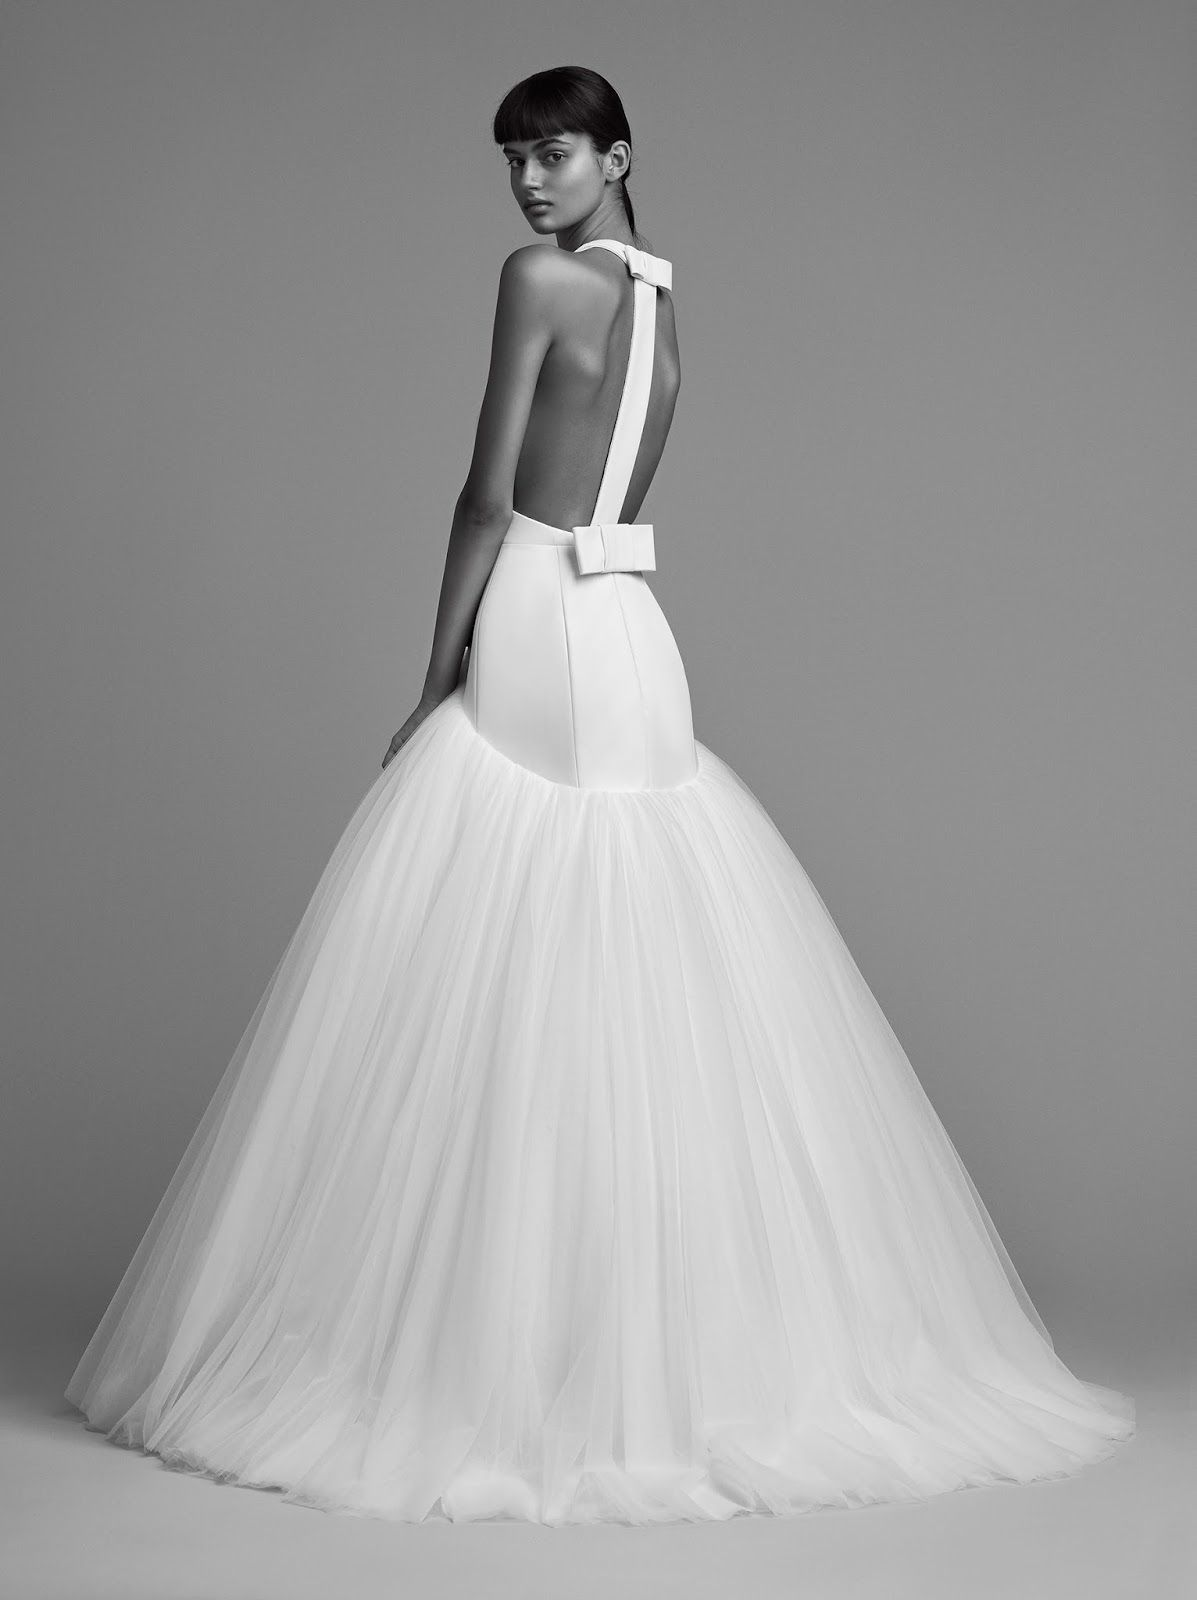 Simply Exquisite Bridal Collection: Viktor and Rolf | ZsaZsa ...